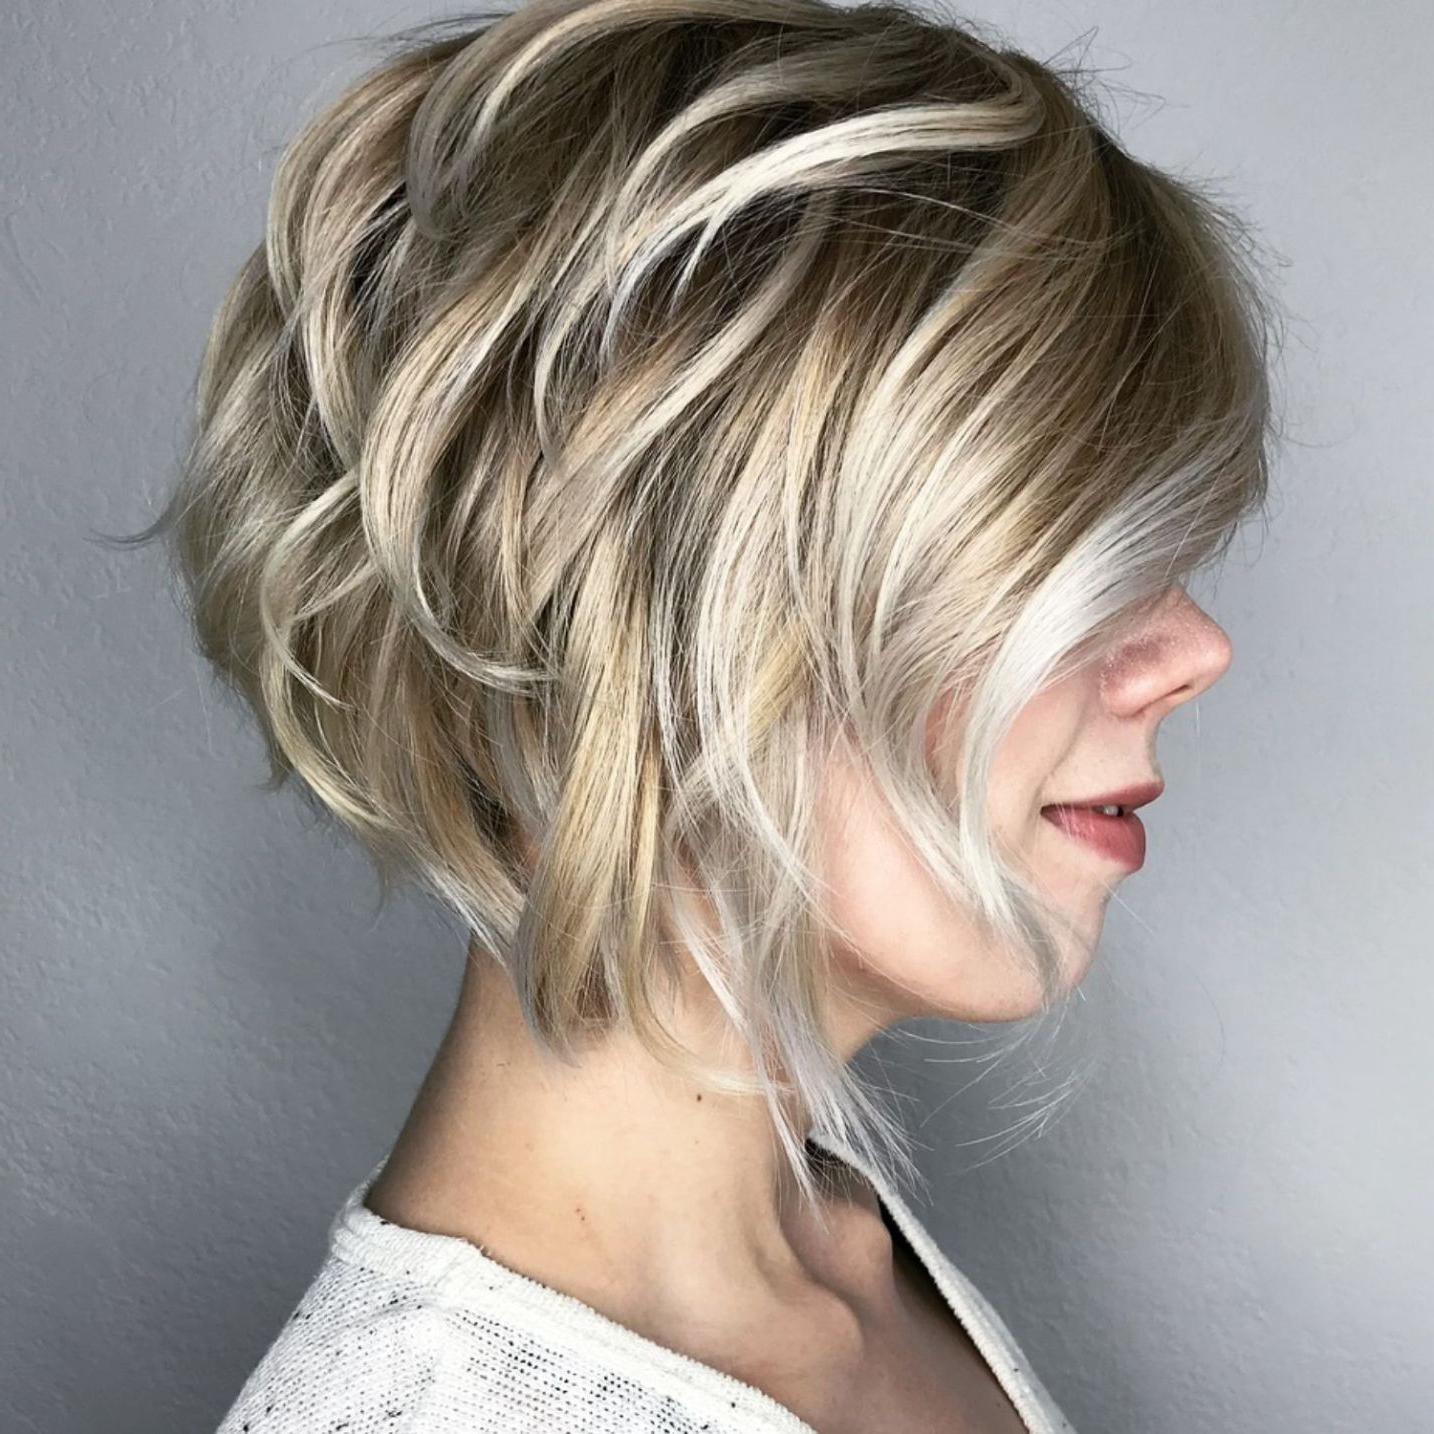 60 Best Short Bob Haircuts And Hairstyles For Women | Cute With Regard To Silver Short Bob Haircuts (View 11 of 20)